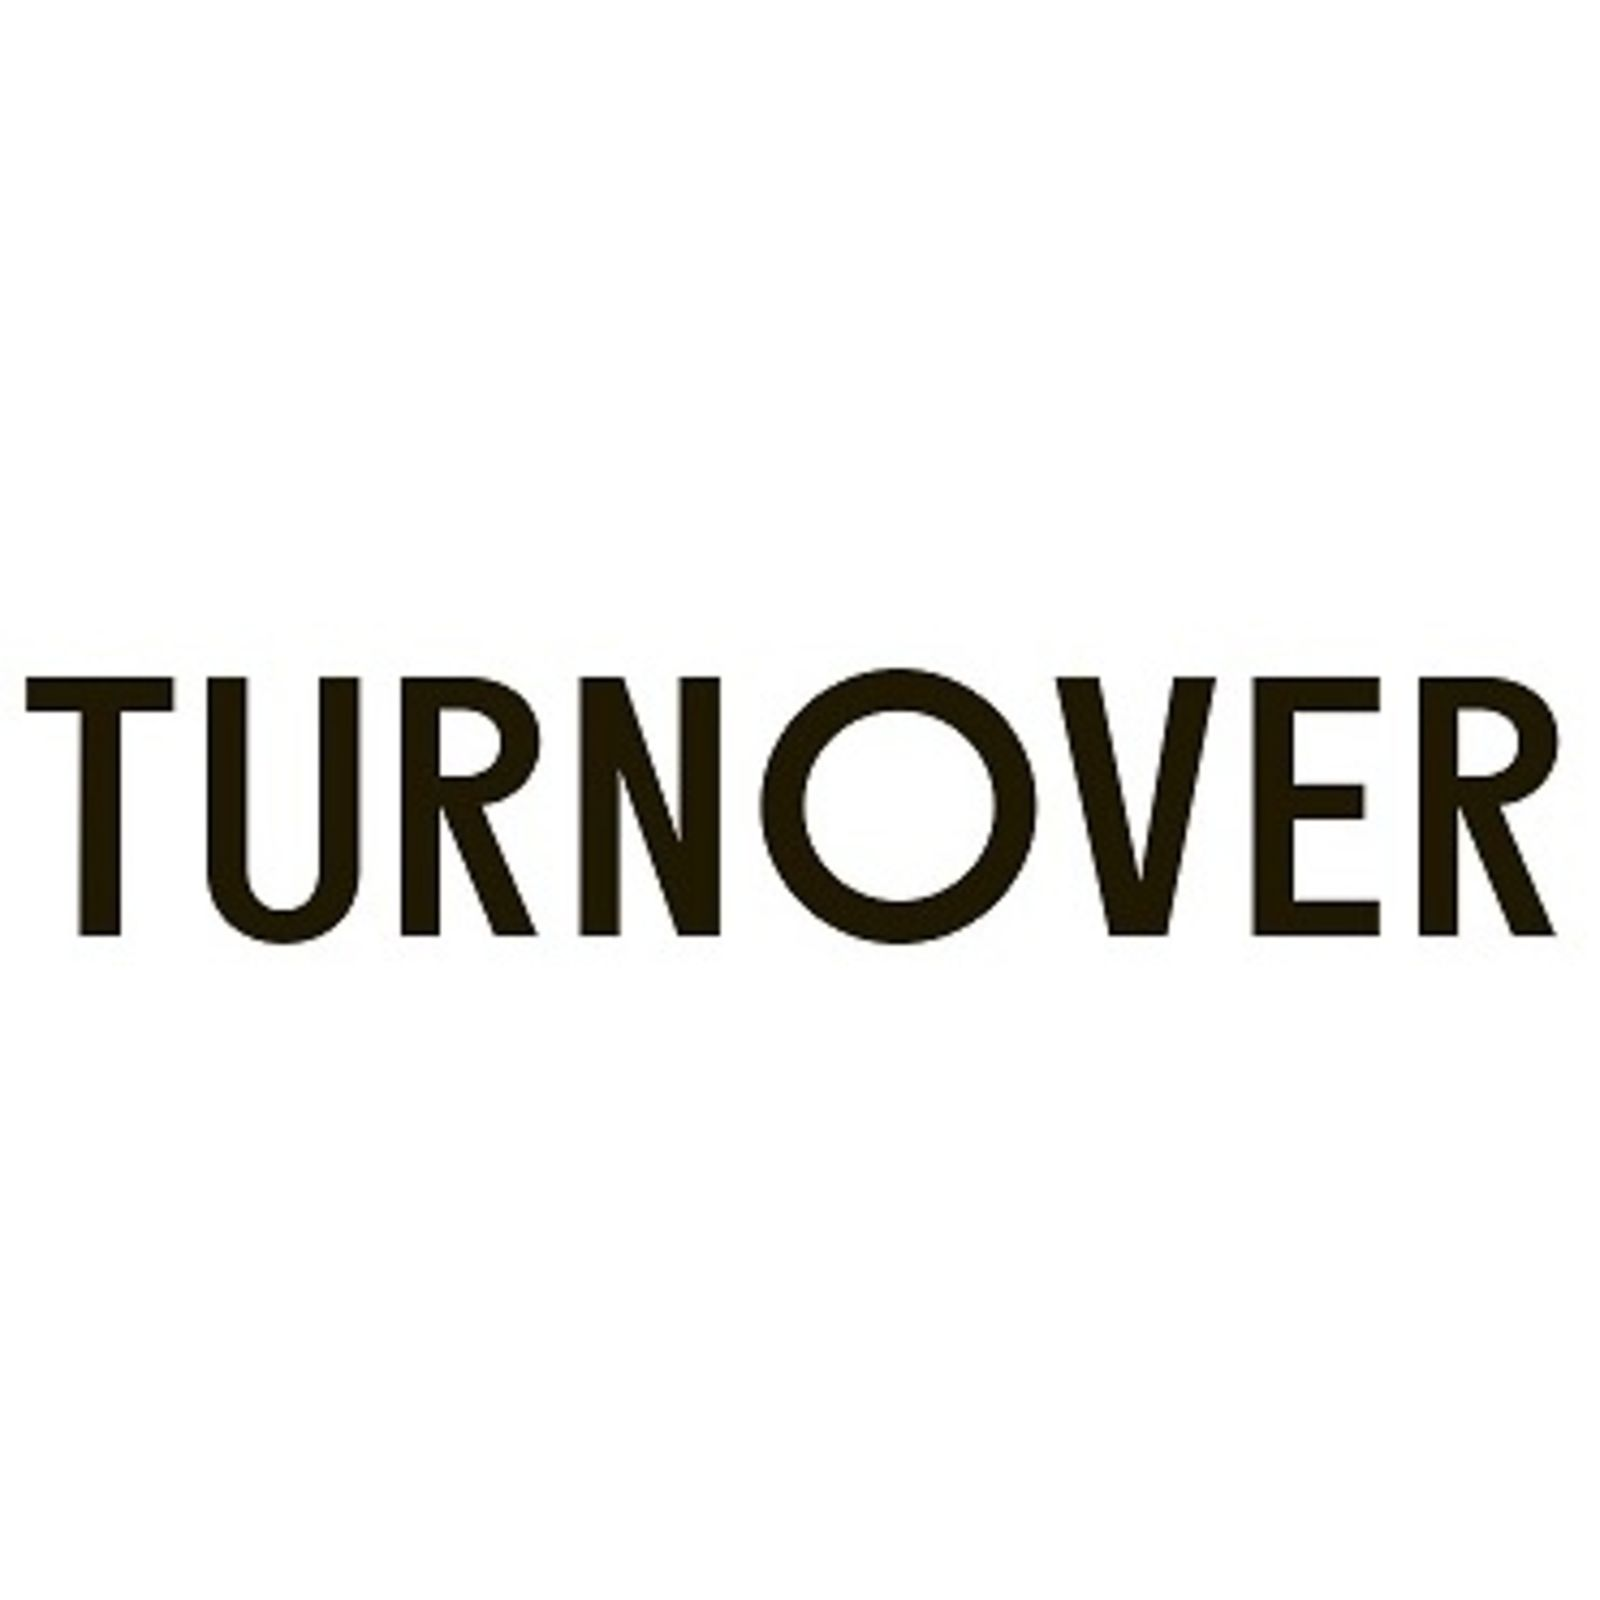 TURNOVER (Image 1)